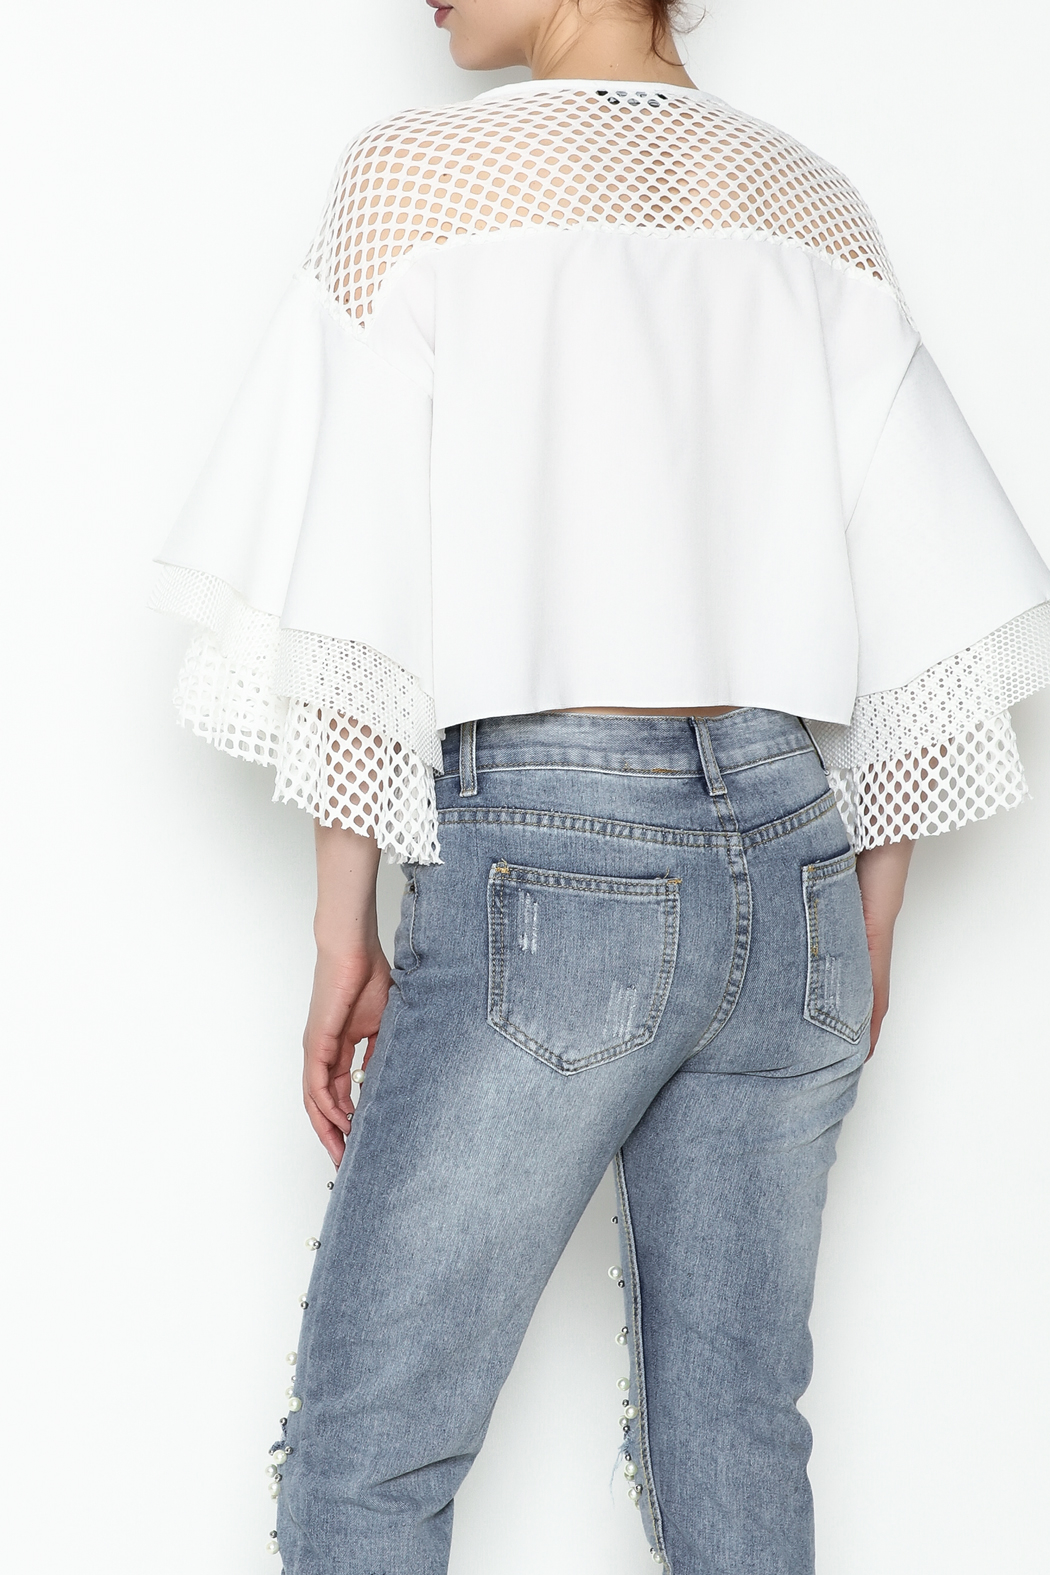 cq by cq White Netted Top - Back Cropped Image